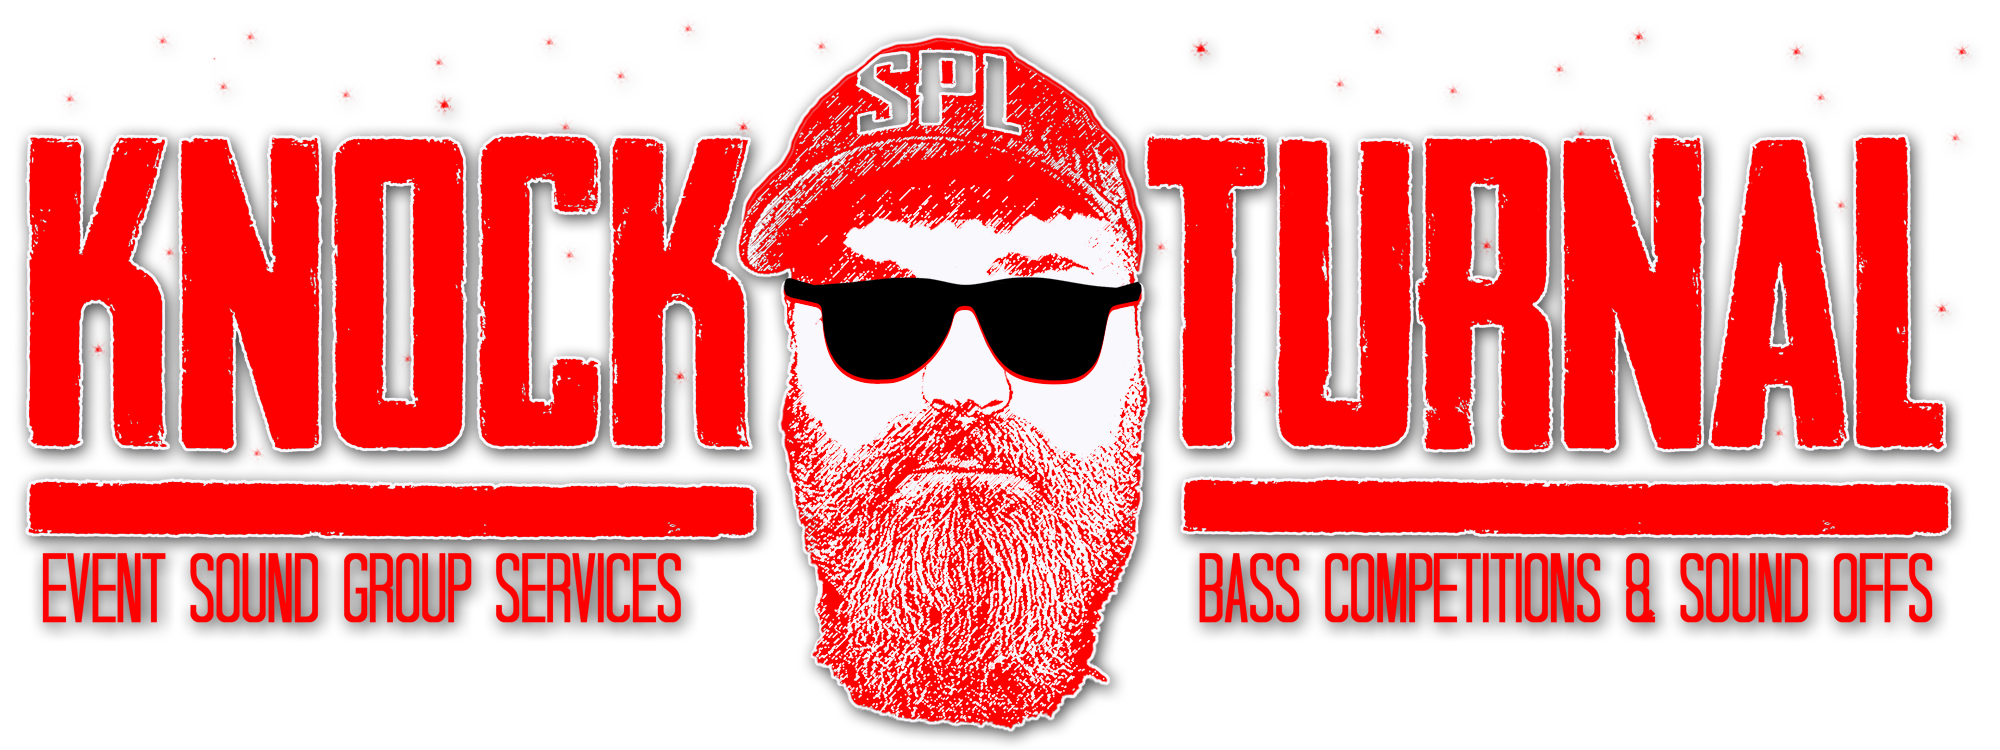 Knockturnal Bass Competitions